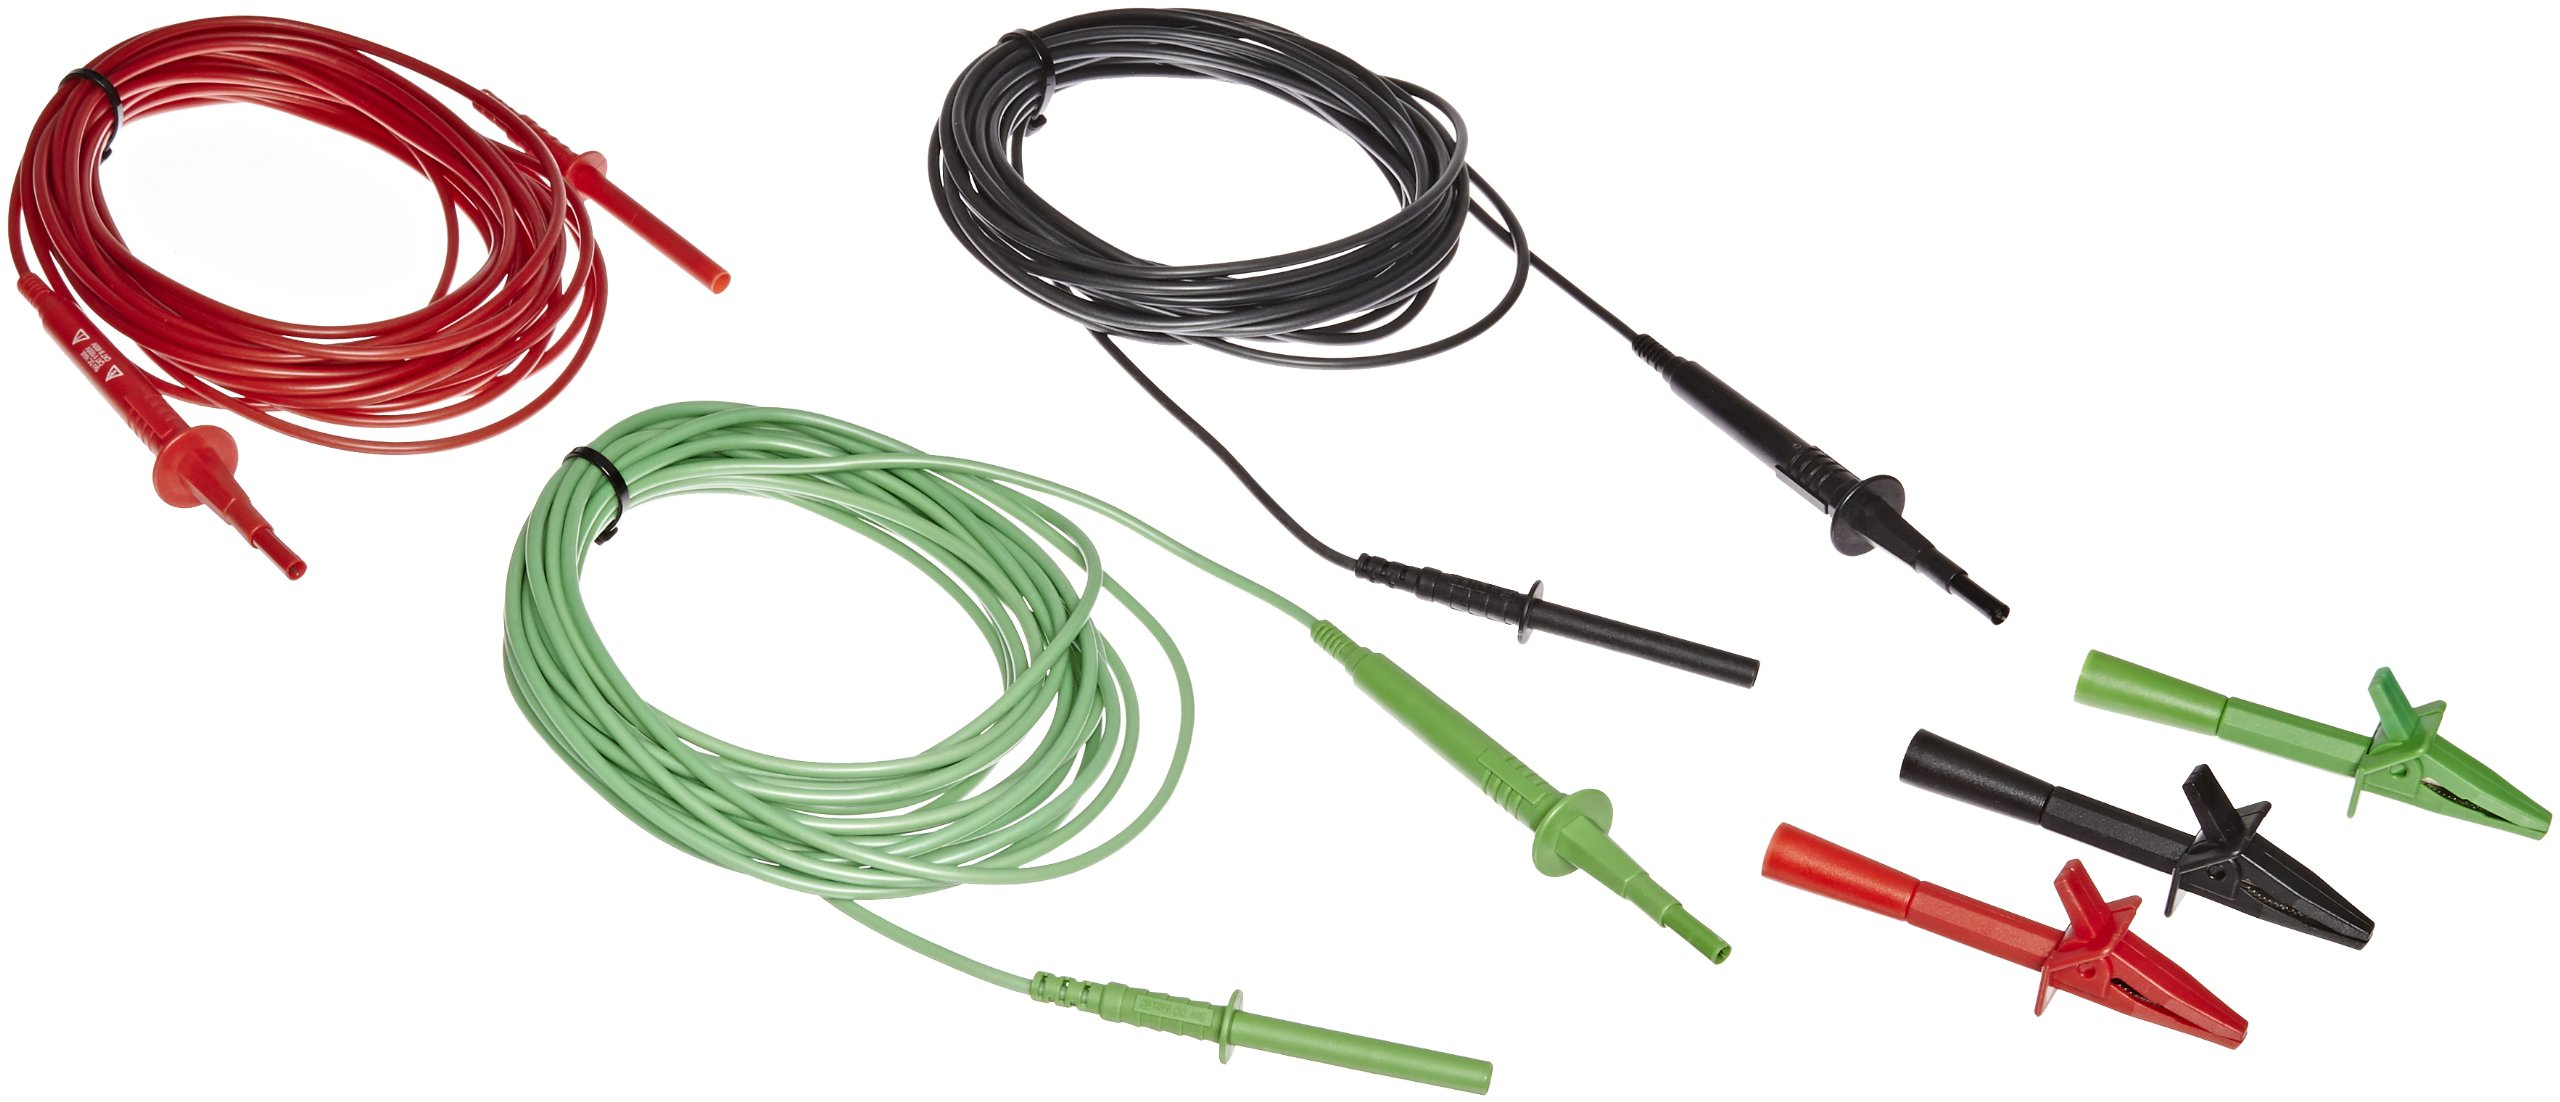 Fluke TL1550EXT 3 Piece Extended Test Lead Set with Alligator Clips, 5000V DC Voltage, 20A Current, 300'' Cable Length